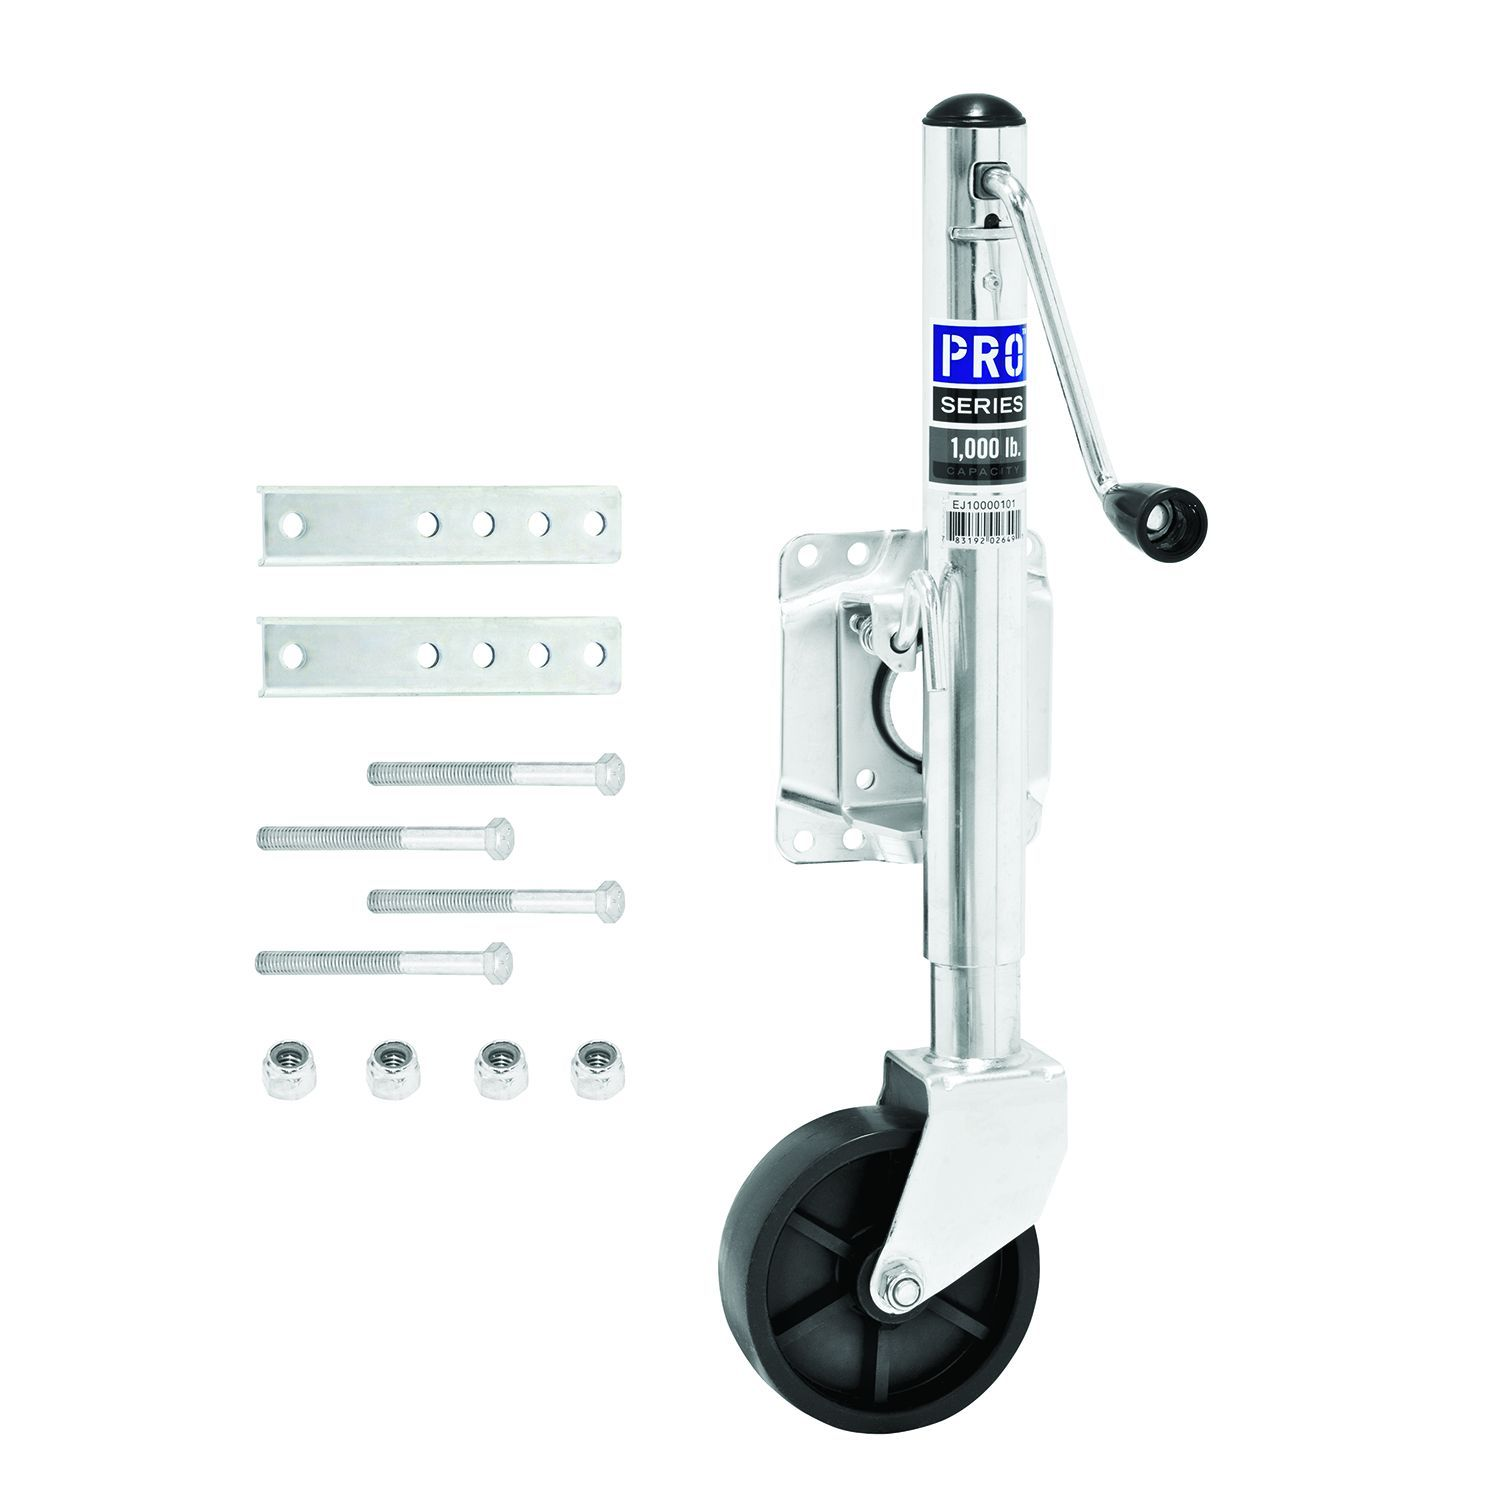 EJ10000101 Pro Series Hitch Trailer Tongue Jack Manual Swivel Trailer